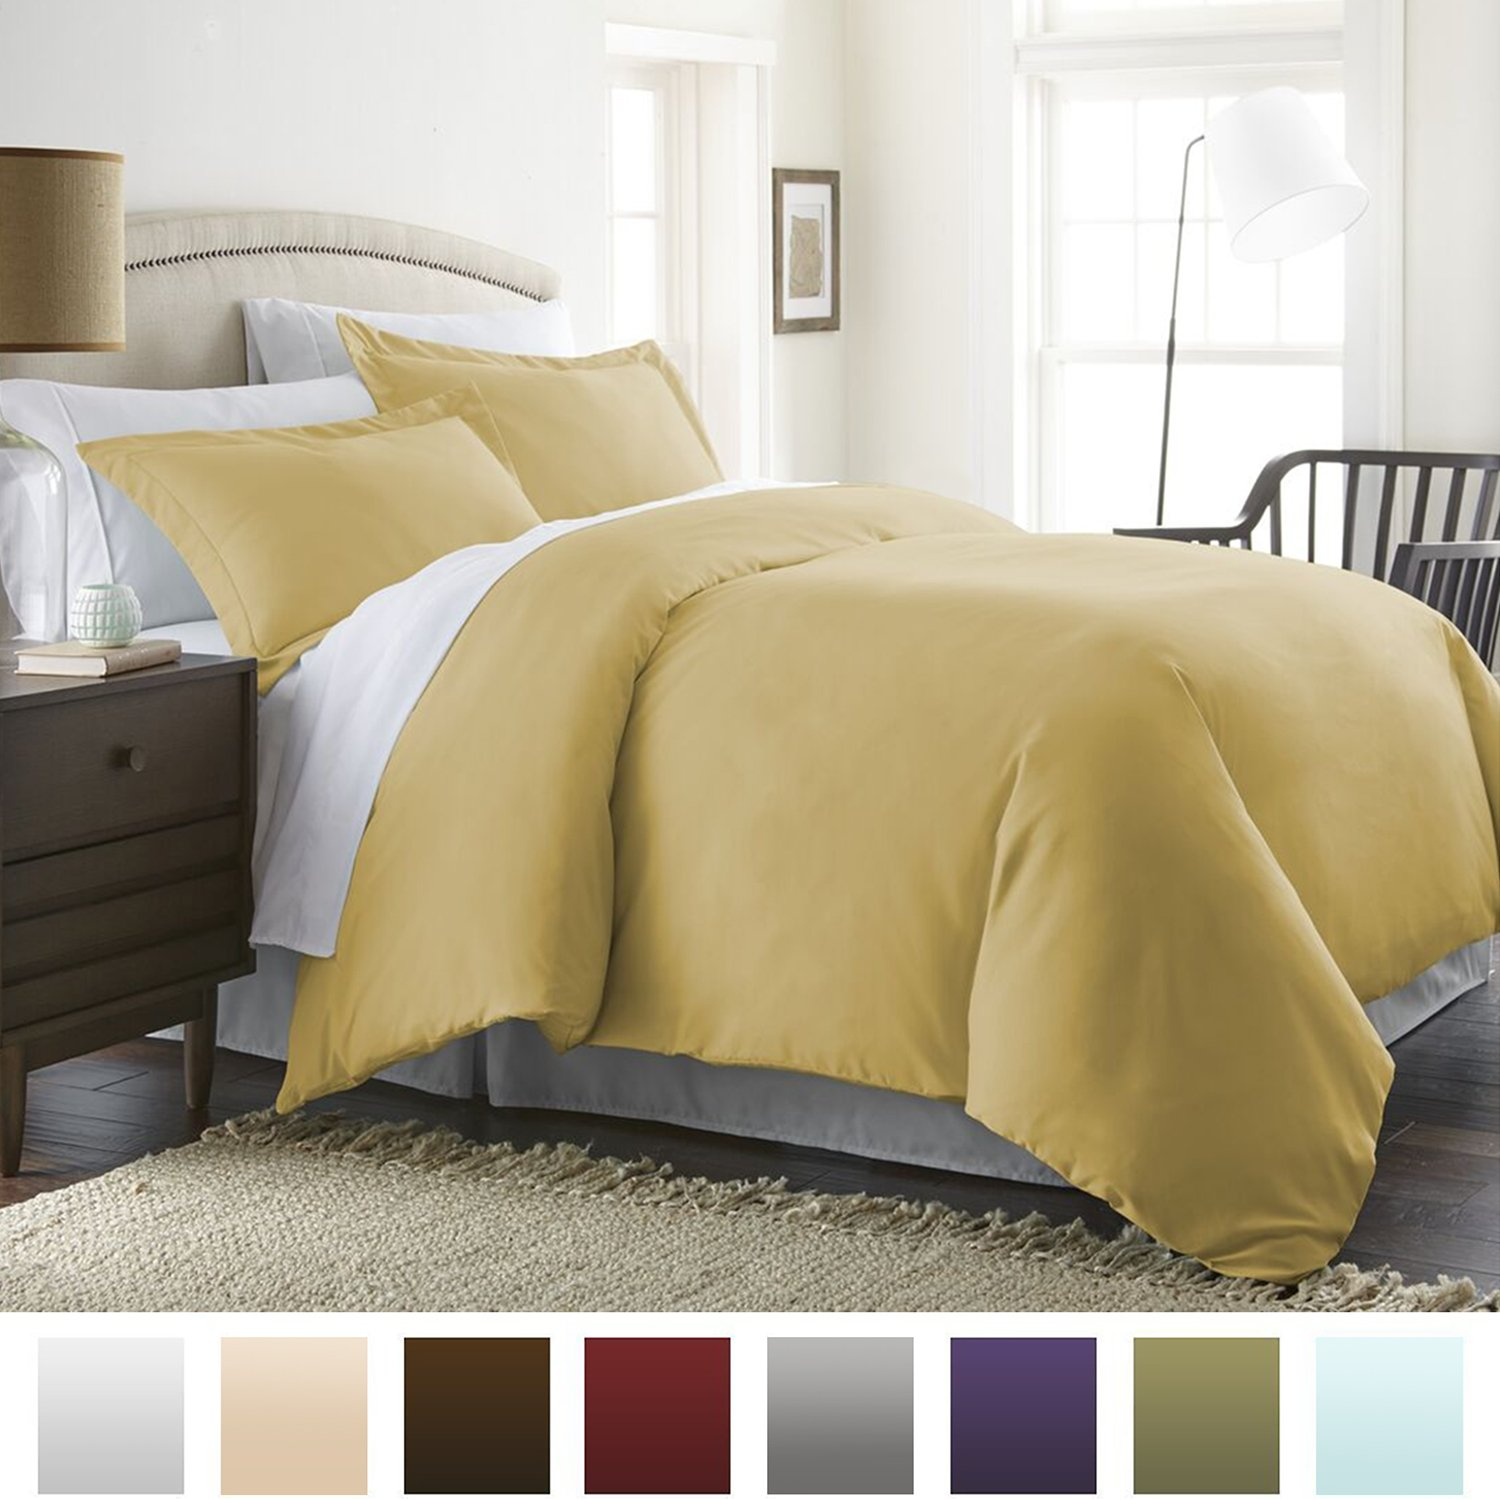 Beckham Hotel Collection Luxury Soft Brushed 1800 Series Microfiber Duvet Cover Set - Hypoallergenic - King/Cal King, Gold